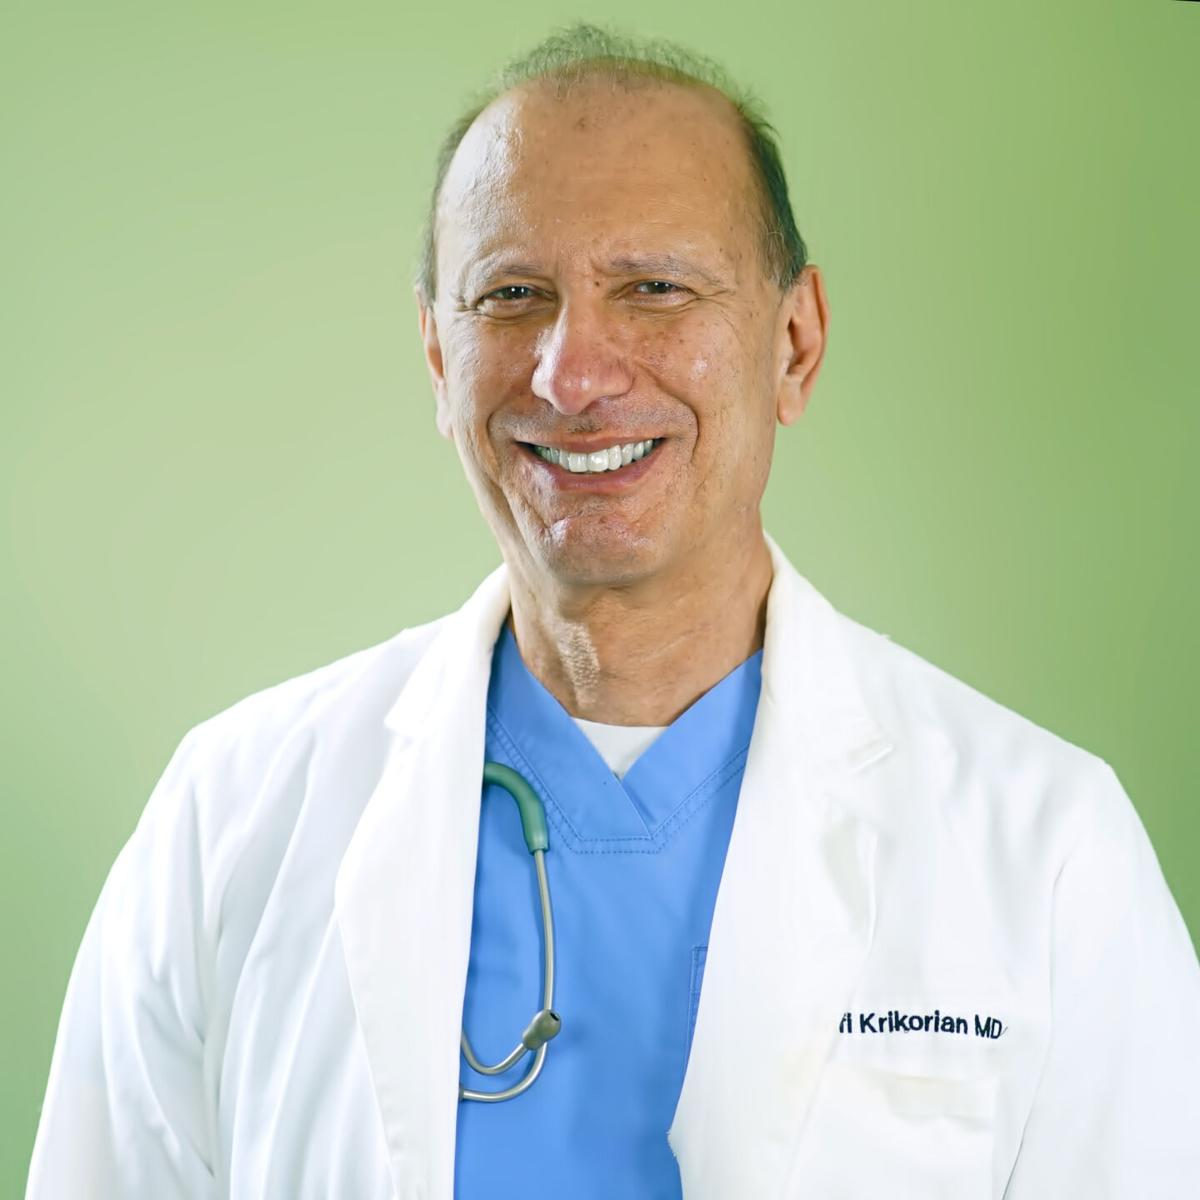 Local Vascular Doctor Working to Prevent Leg Ulcers from Resulting in Amputations.